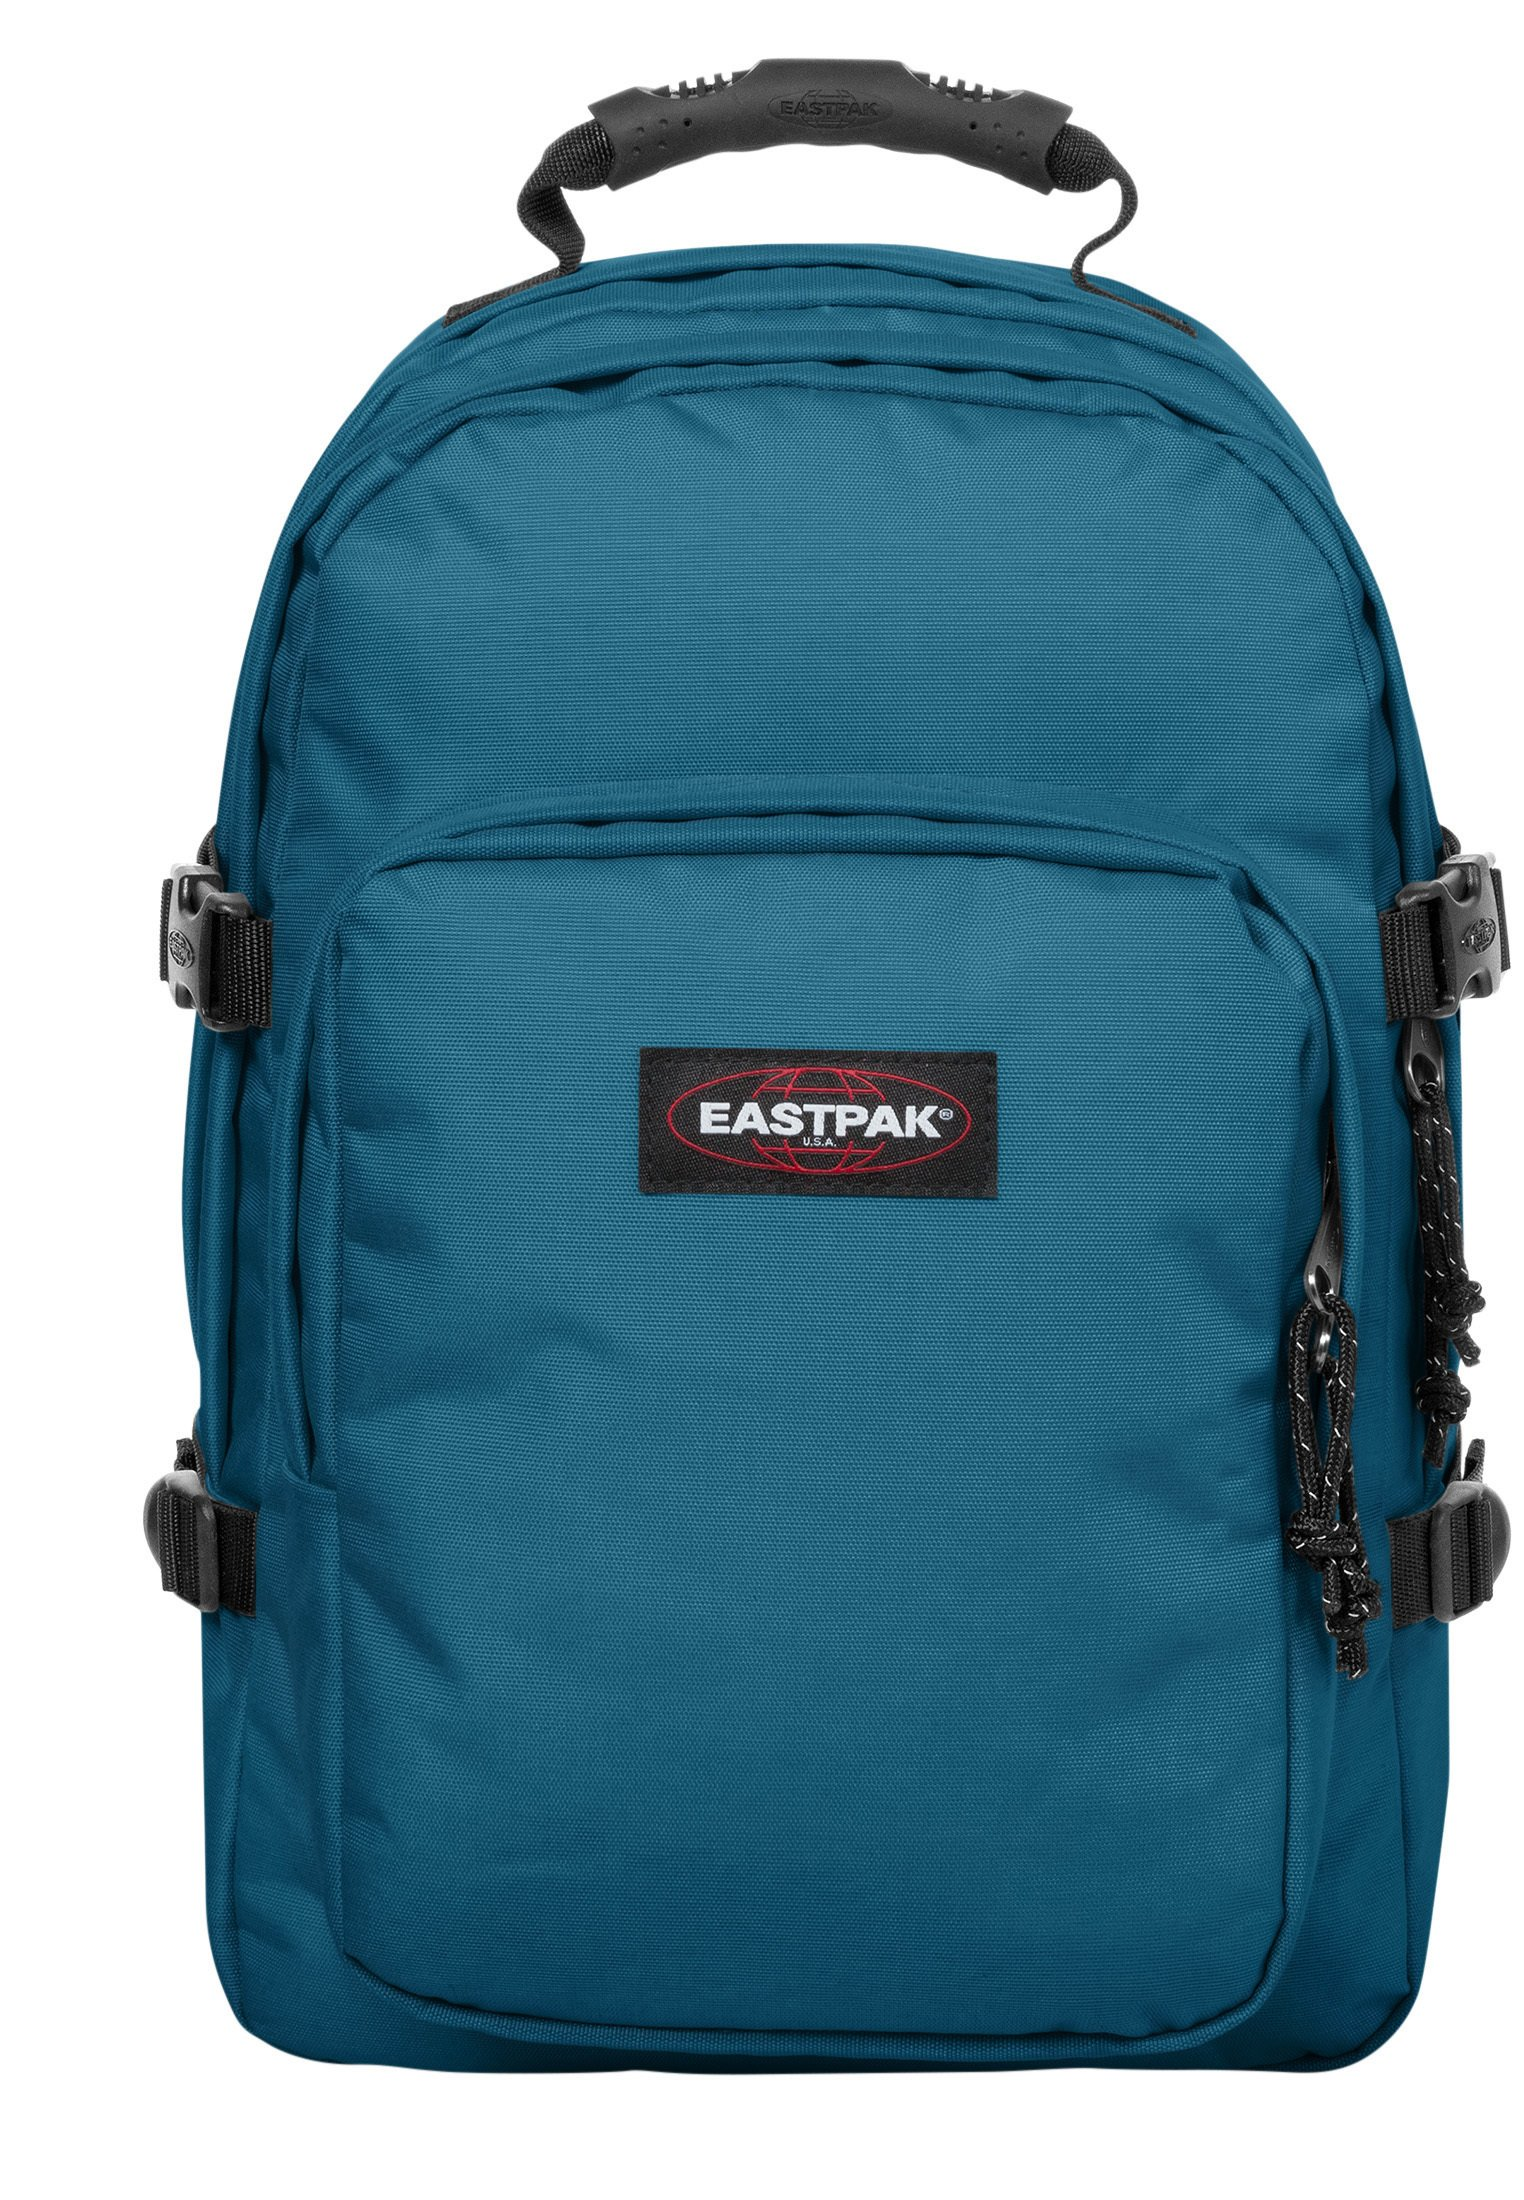 Eastpak Seasonal Colors - Sac À Dos Horizon Blue